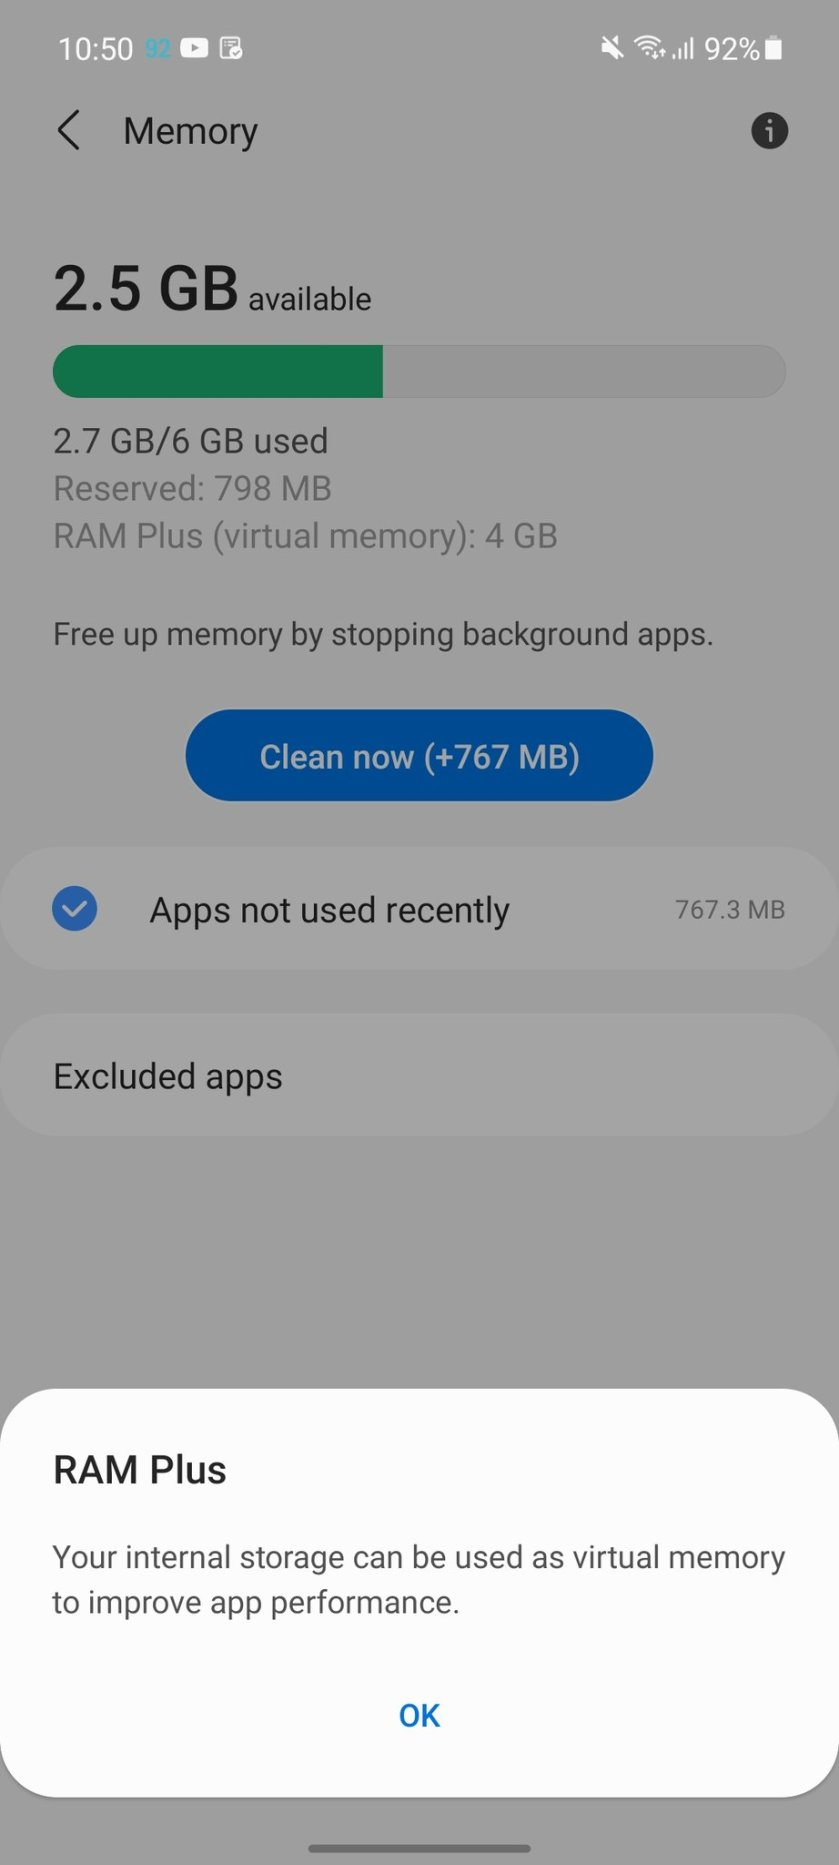 For now, RAM Plus is only available to Indian users.